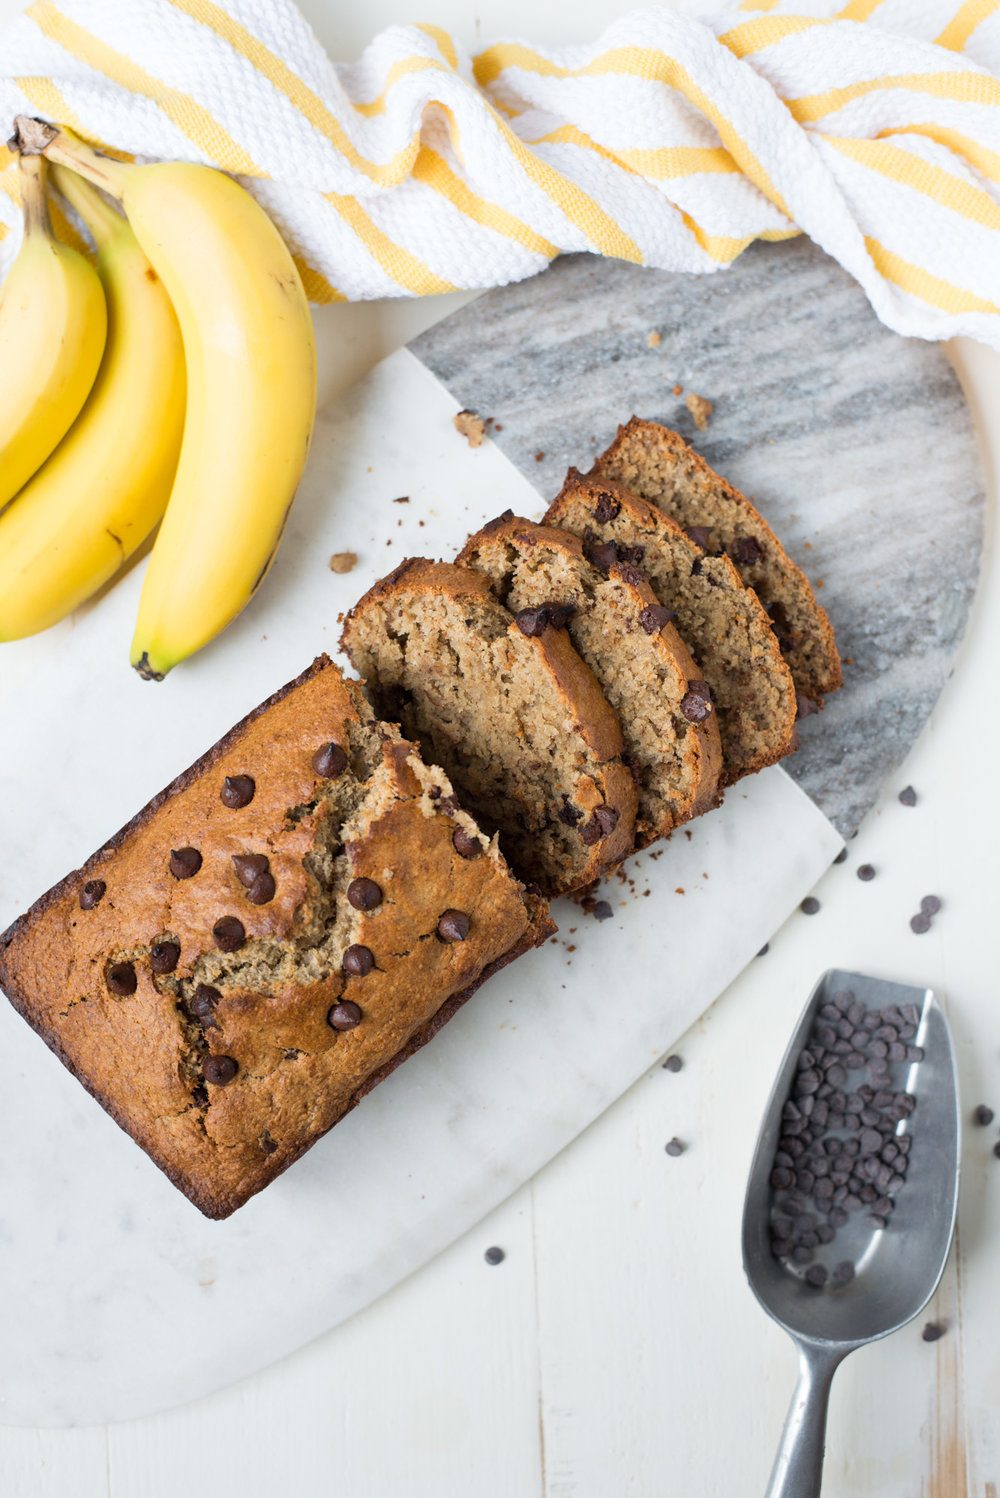 Tender, perfectly sweet, and easy to make, One-Bowl Chocolate Chip Banana Bread is simple to whip up and just the thing for breakfast or as an afternoon snack.